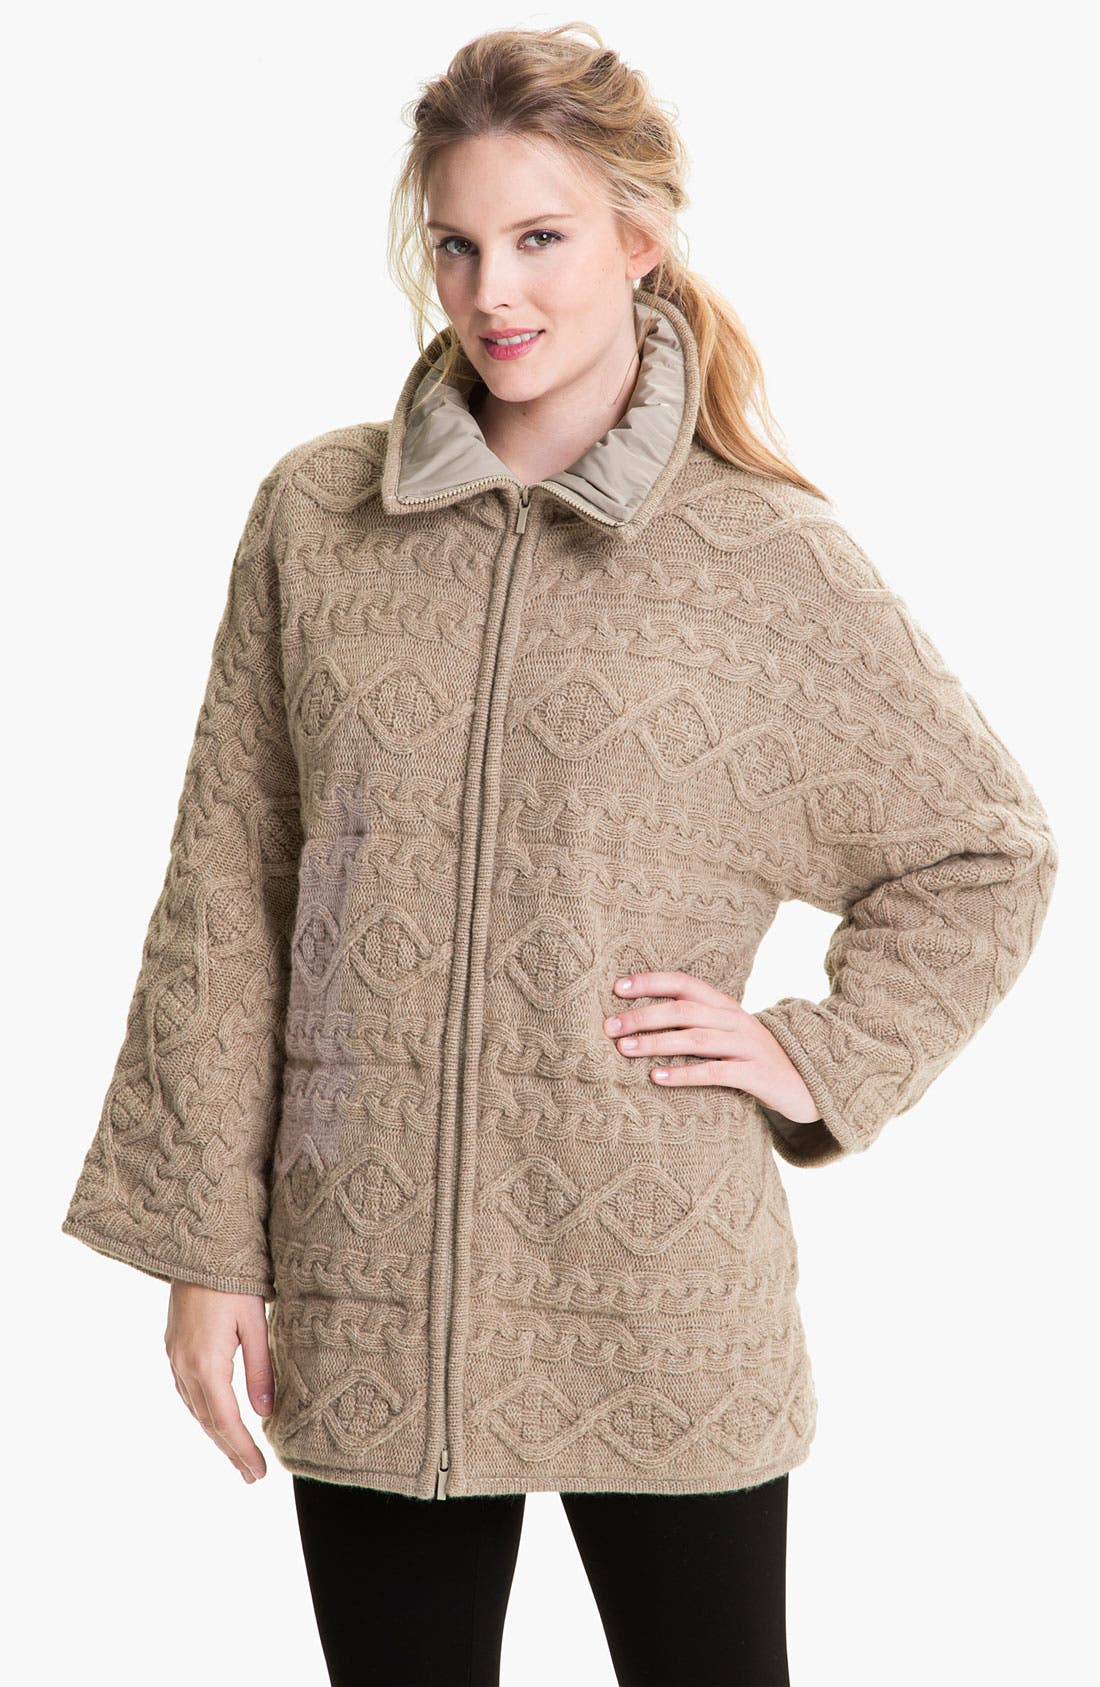 Alternate Image 1 Selected - Lafayette 148 New York Oversized Cable Knit Coat